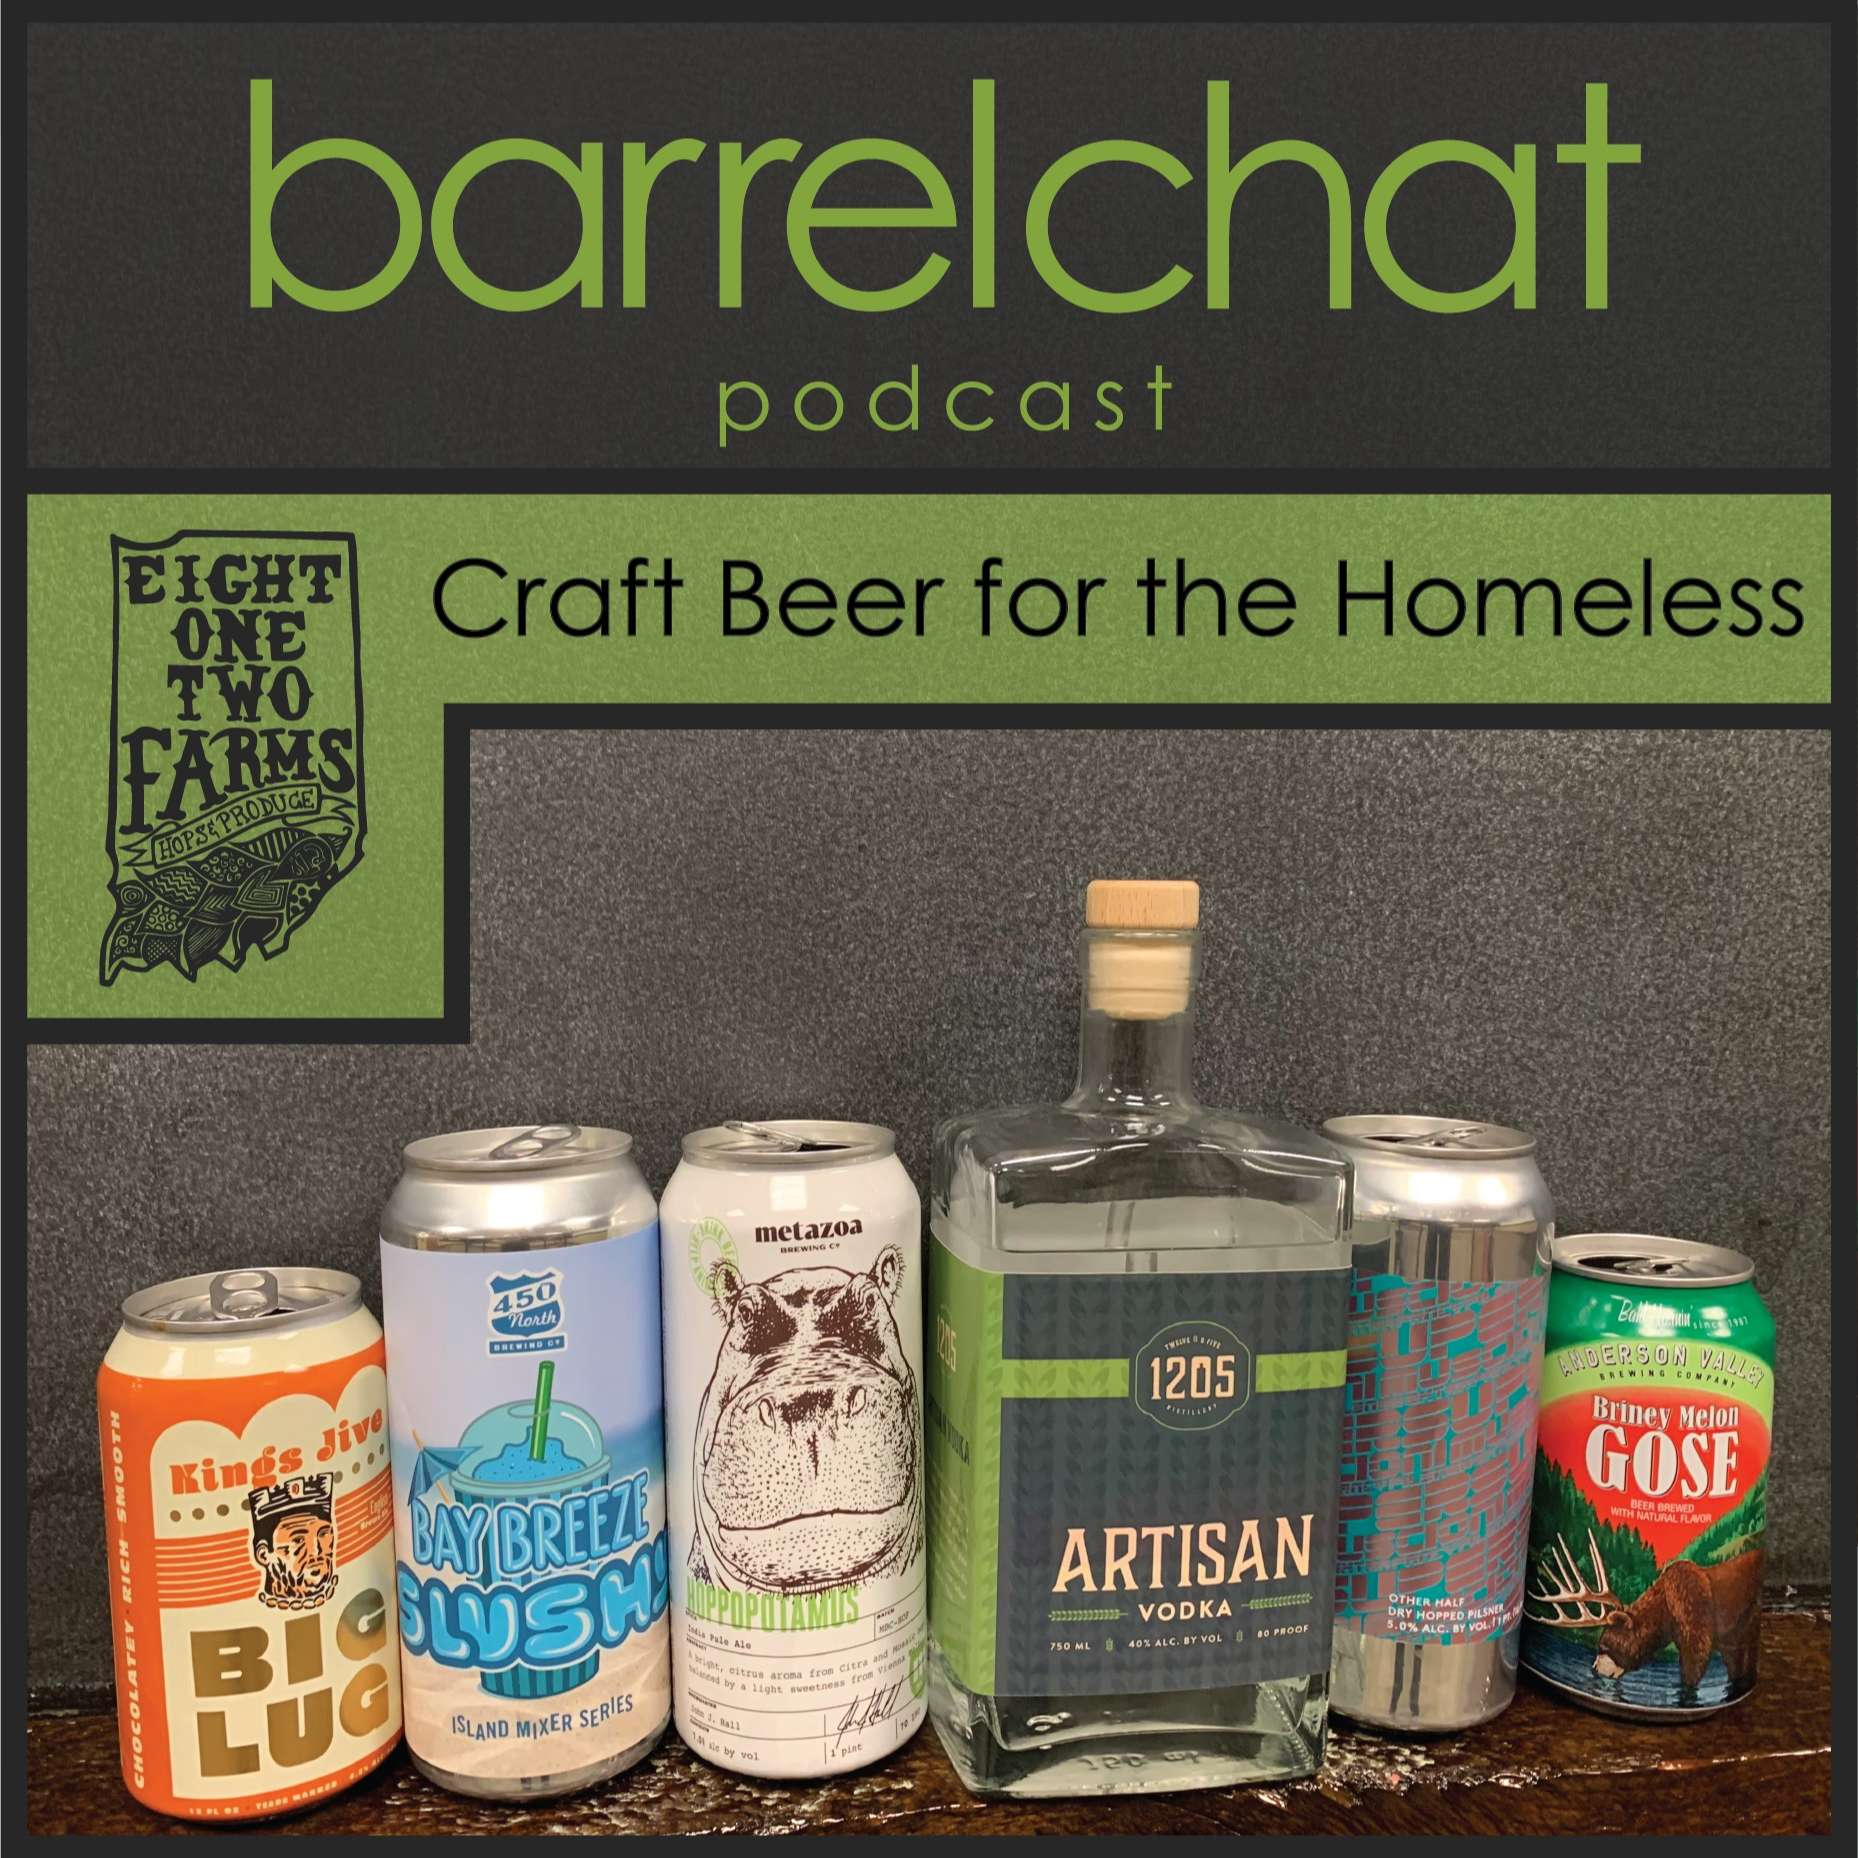 Craft Beer for the Homeless